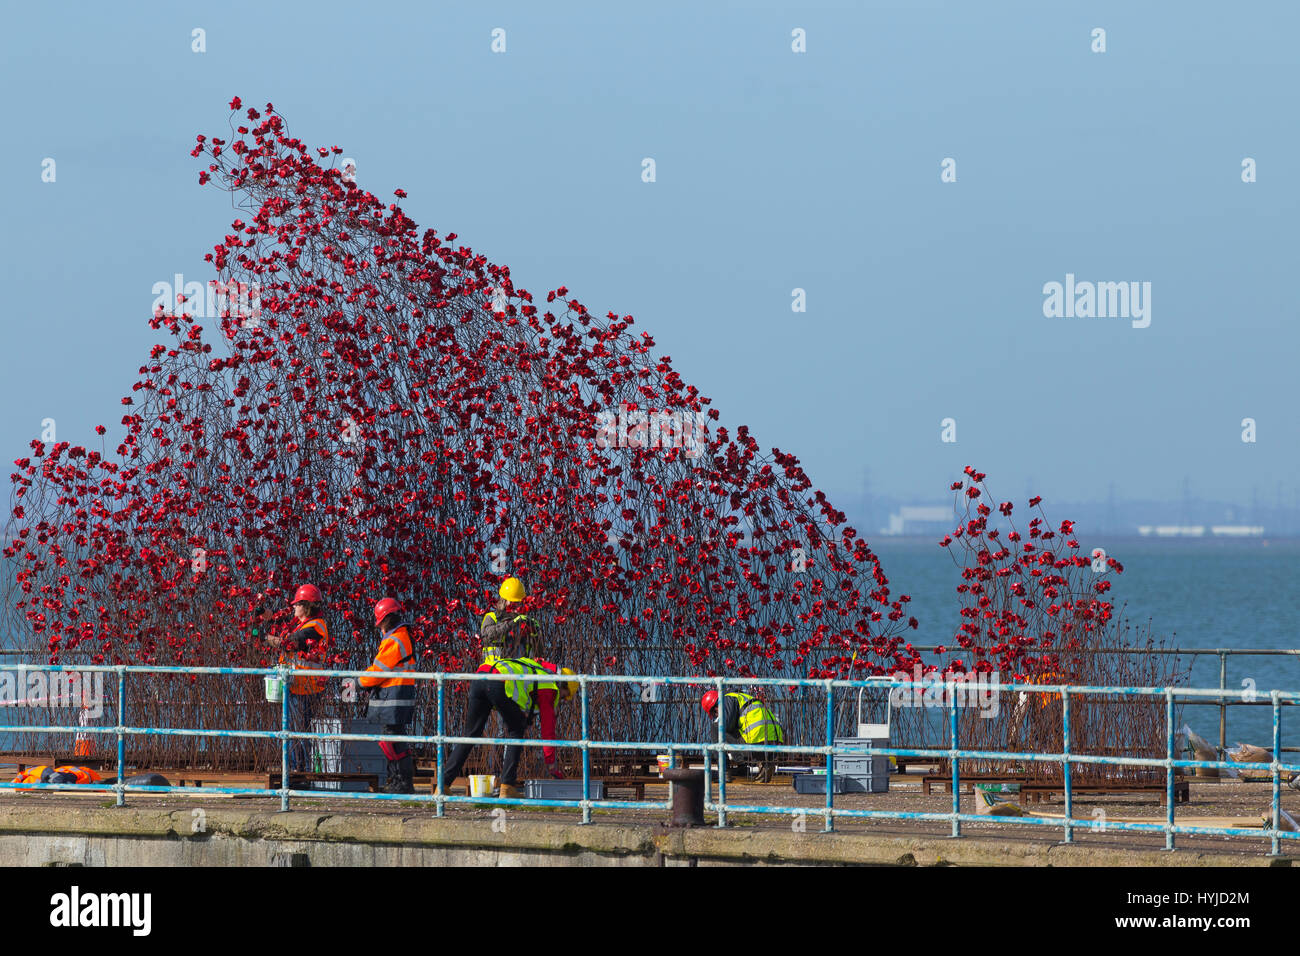 Thames Estuary, Essex, UK. 5th Apr, 2017. 14-18 Now Exhibition of Ceramic Poppies under construction on an old MoD Stock Photo